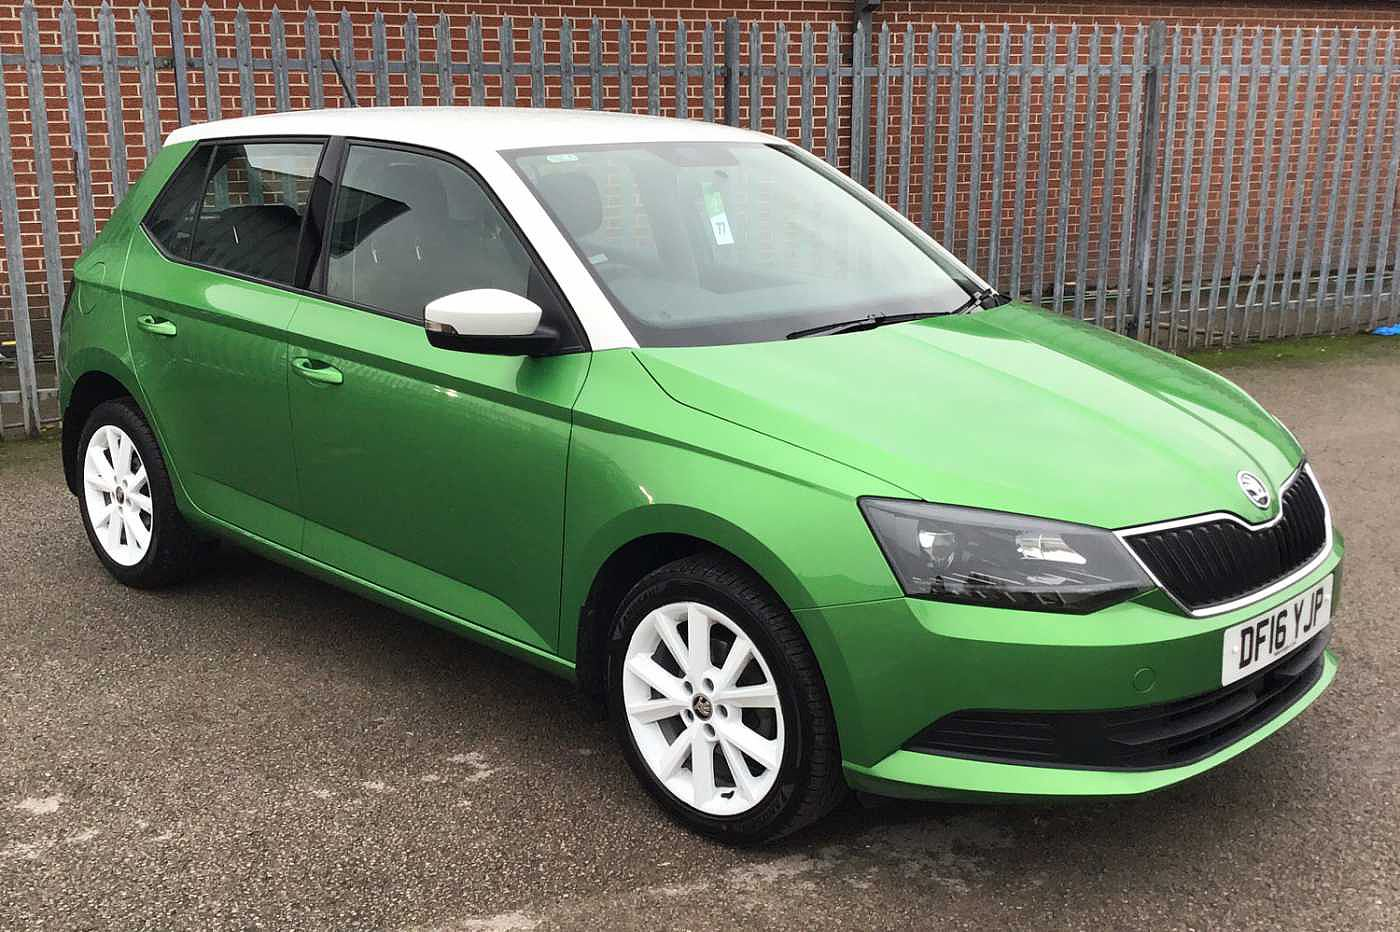 2016 Green Skoda Fabia Hatchback 5-Dr 1.2 TSI, Petrol, Manual